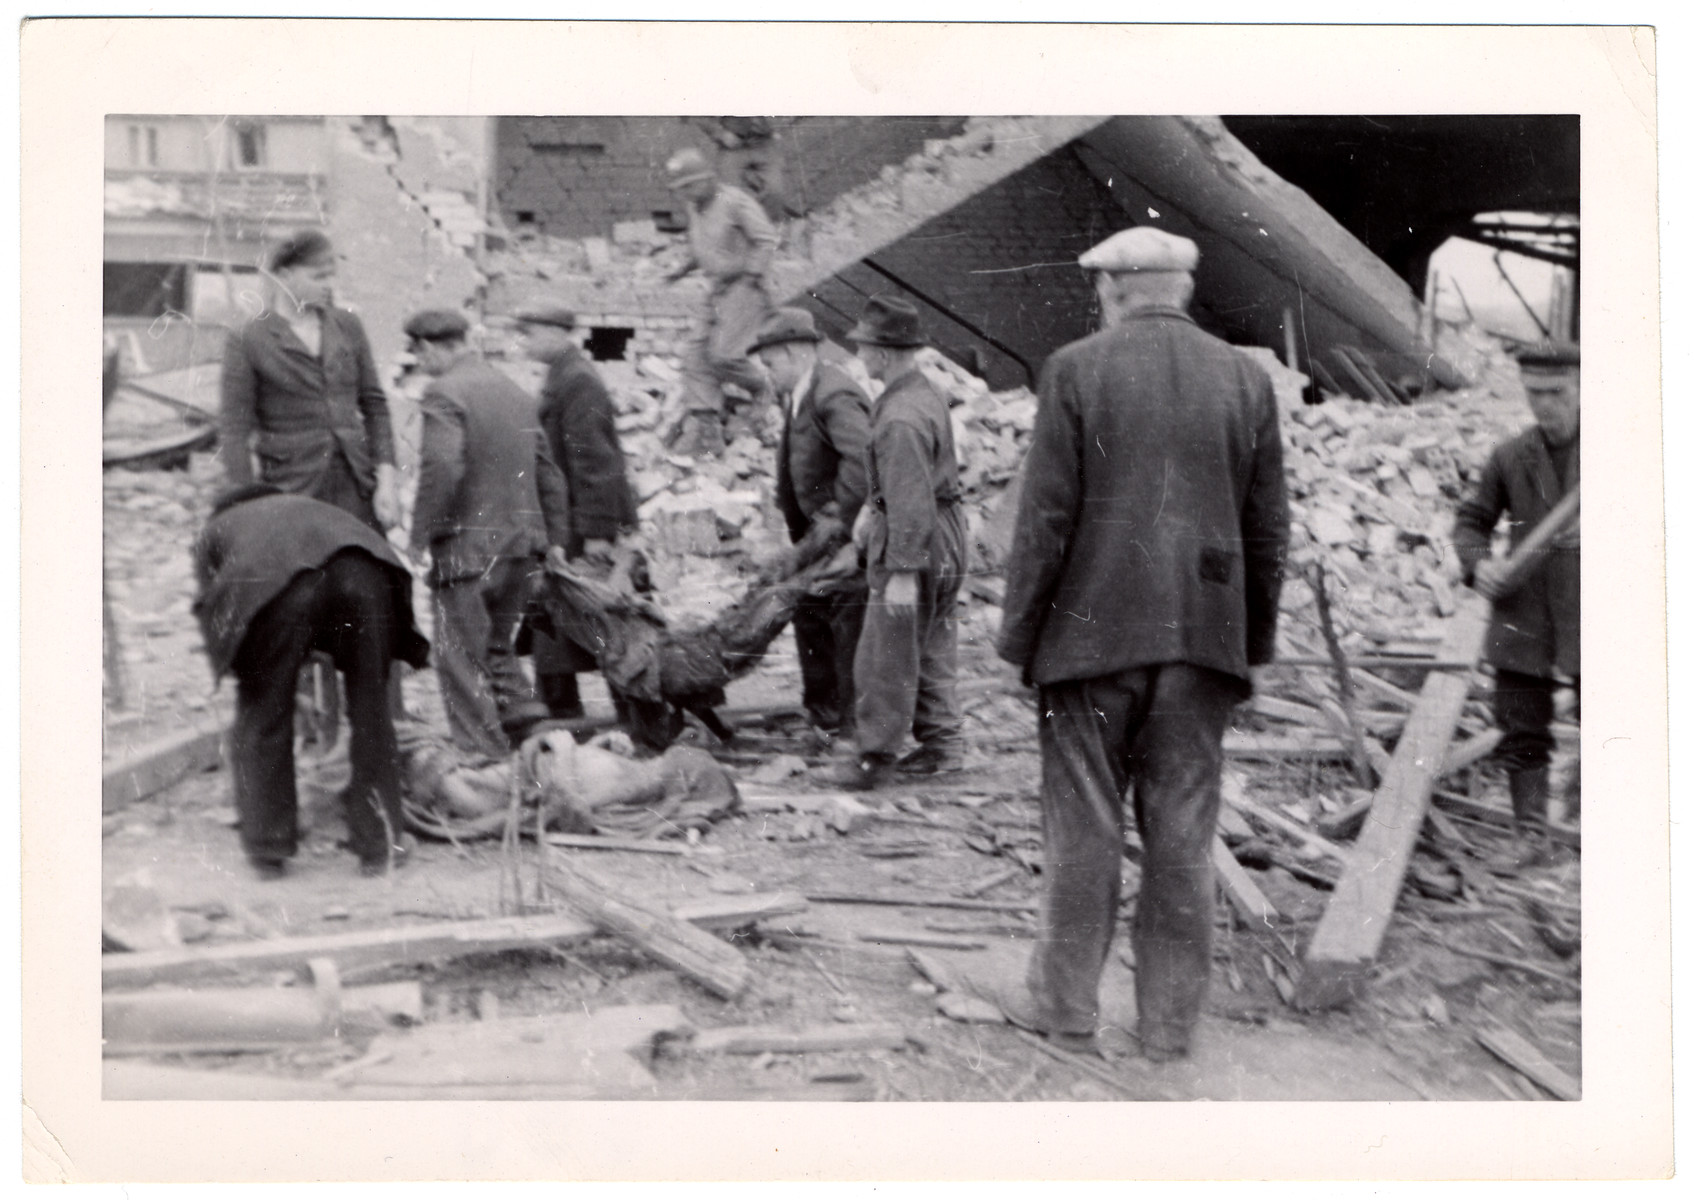 German civilians remove a corpse from the rubble of the Nordhausen concentration camp while other civilians watch and an American soldier walks in the background.